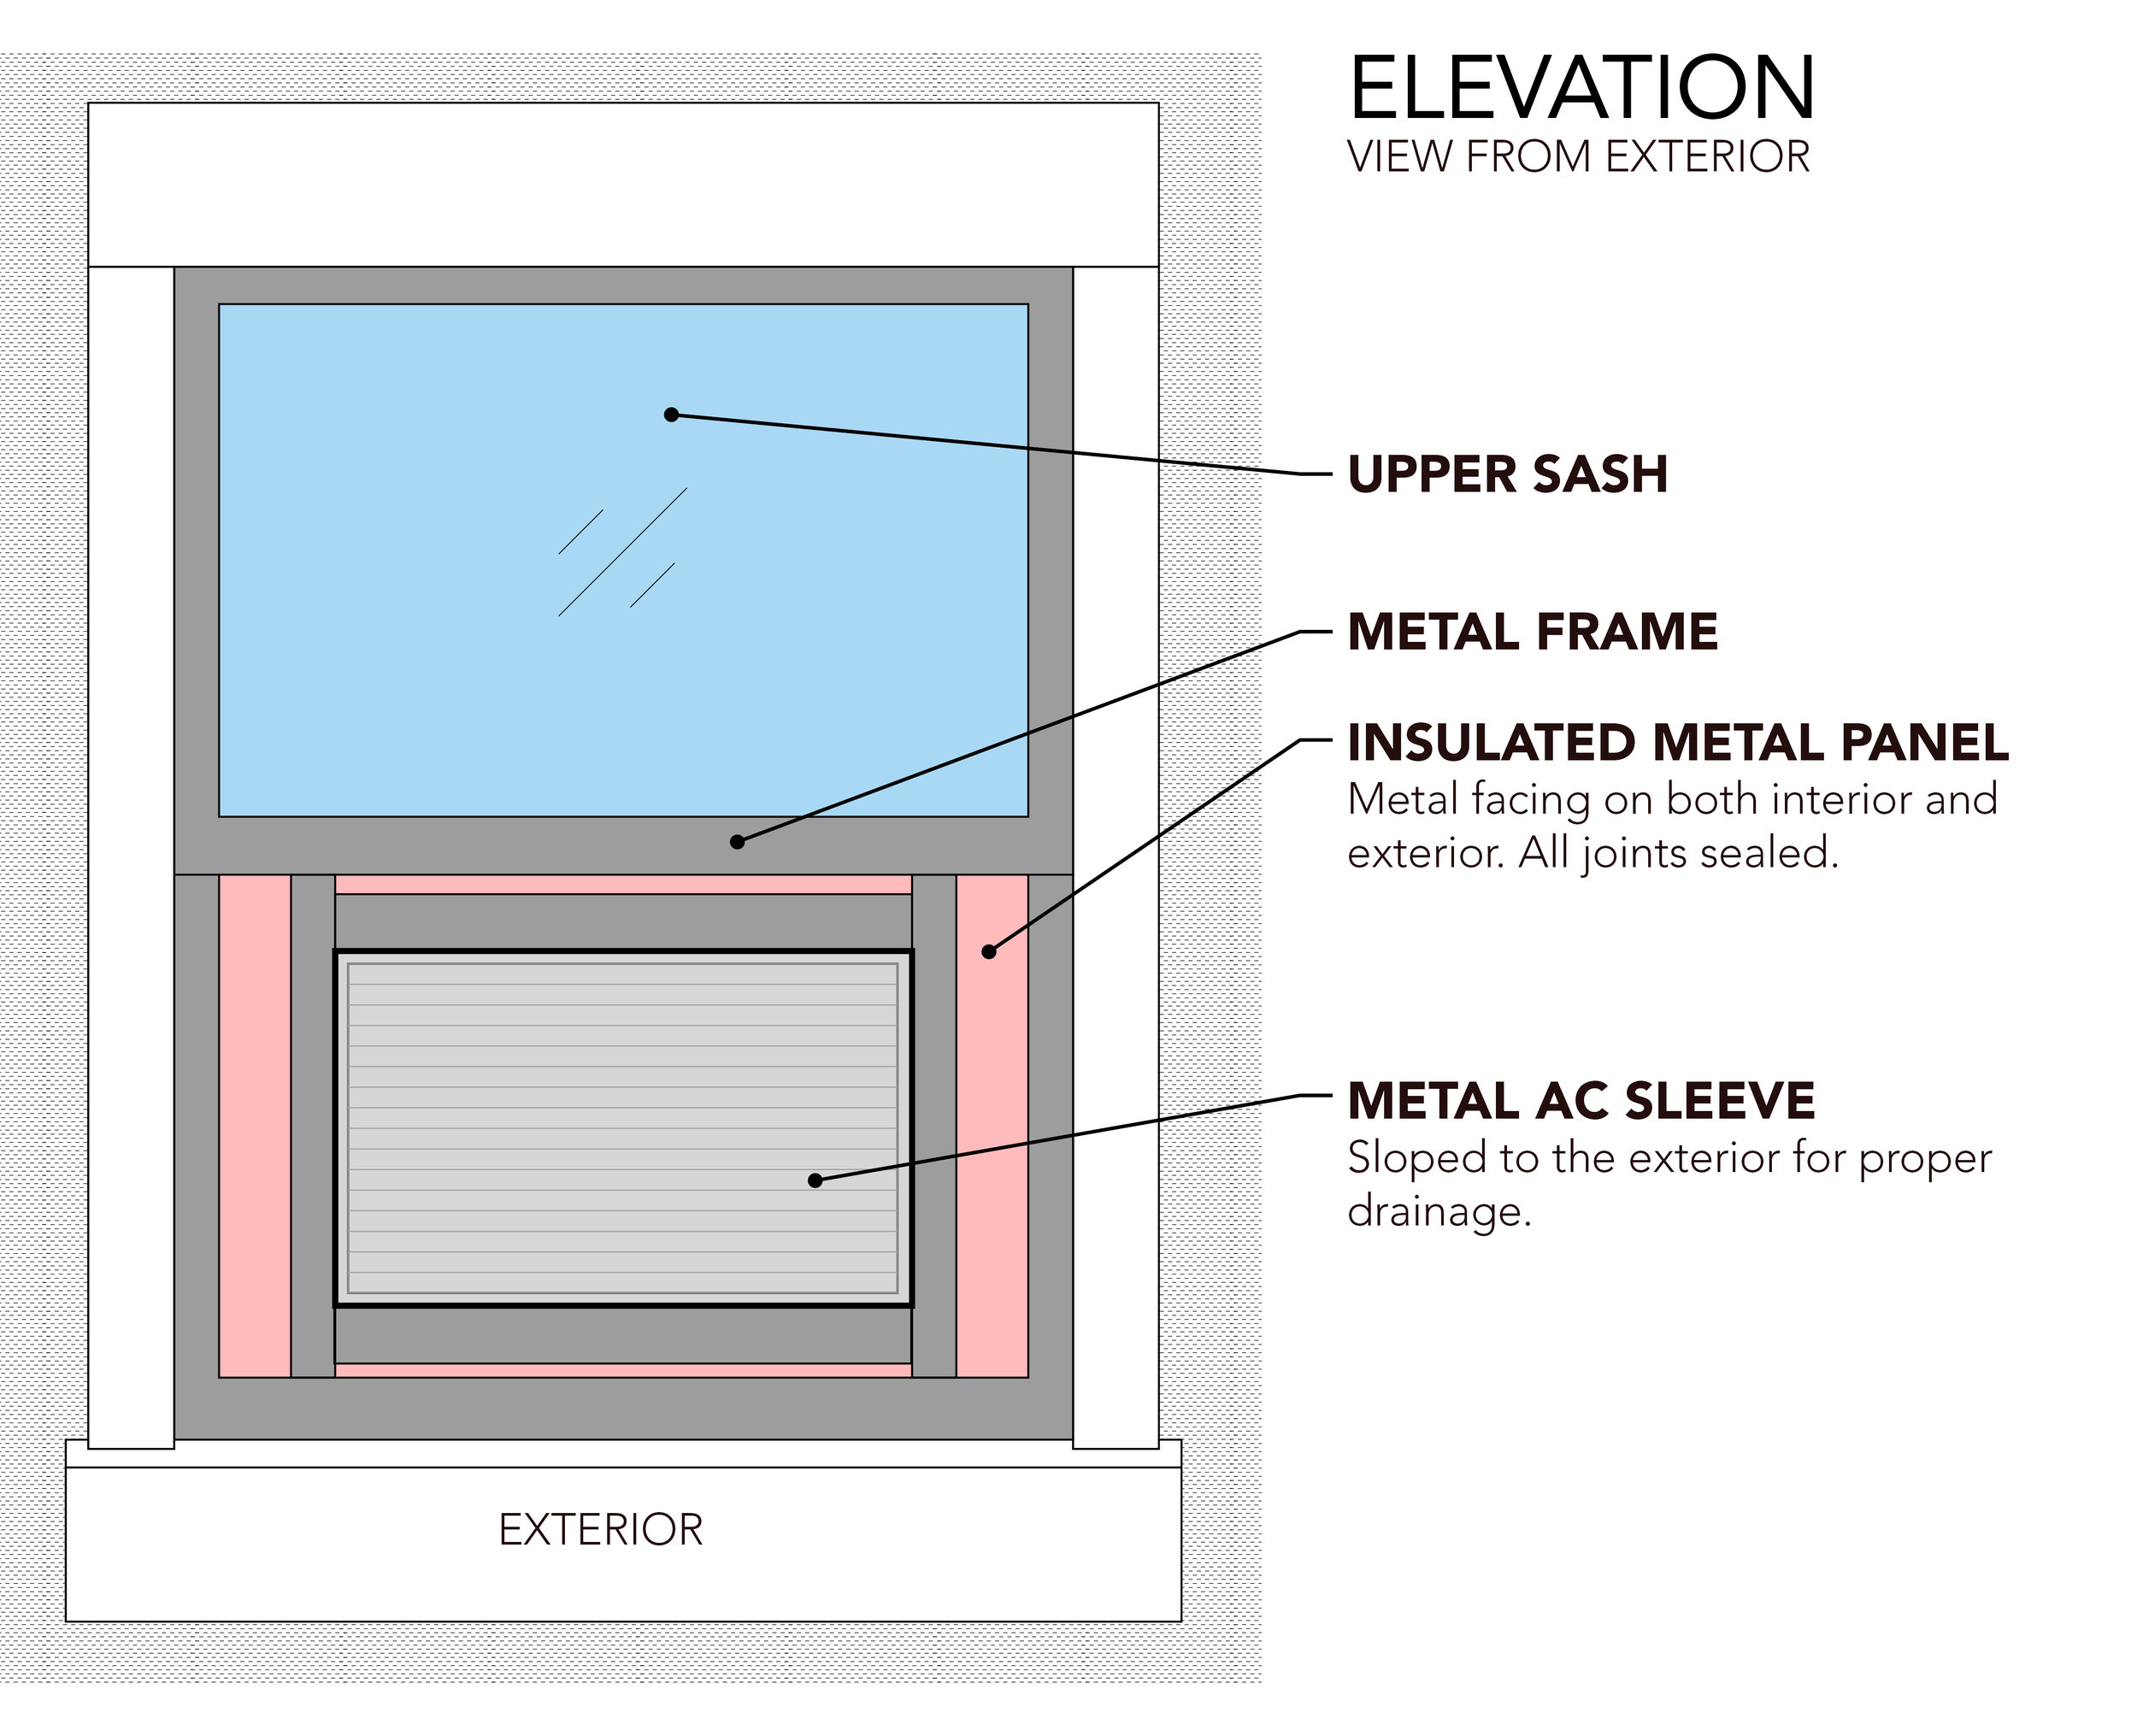 AC Sleeve in Window-Annotated4.jpg